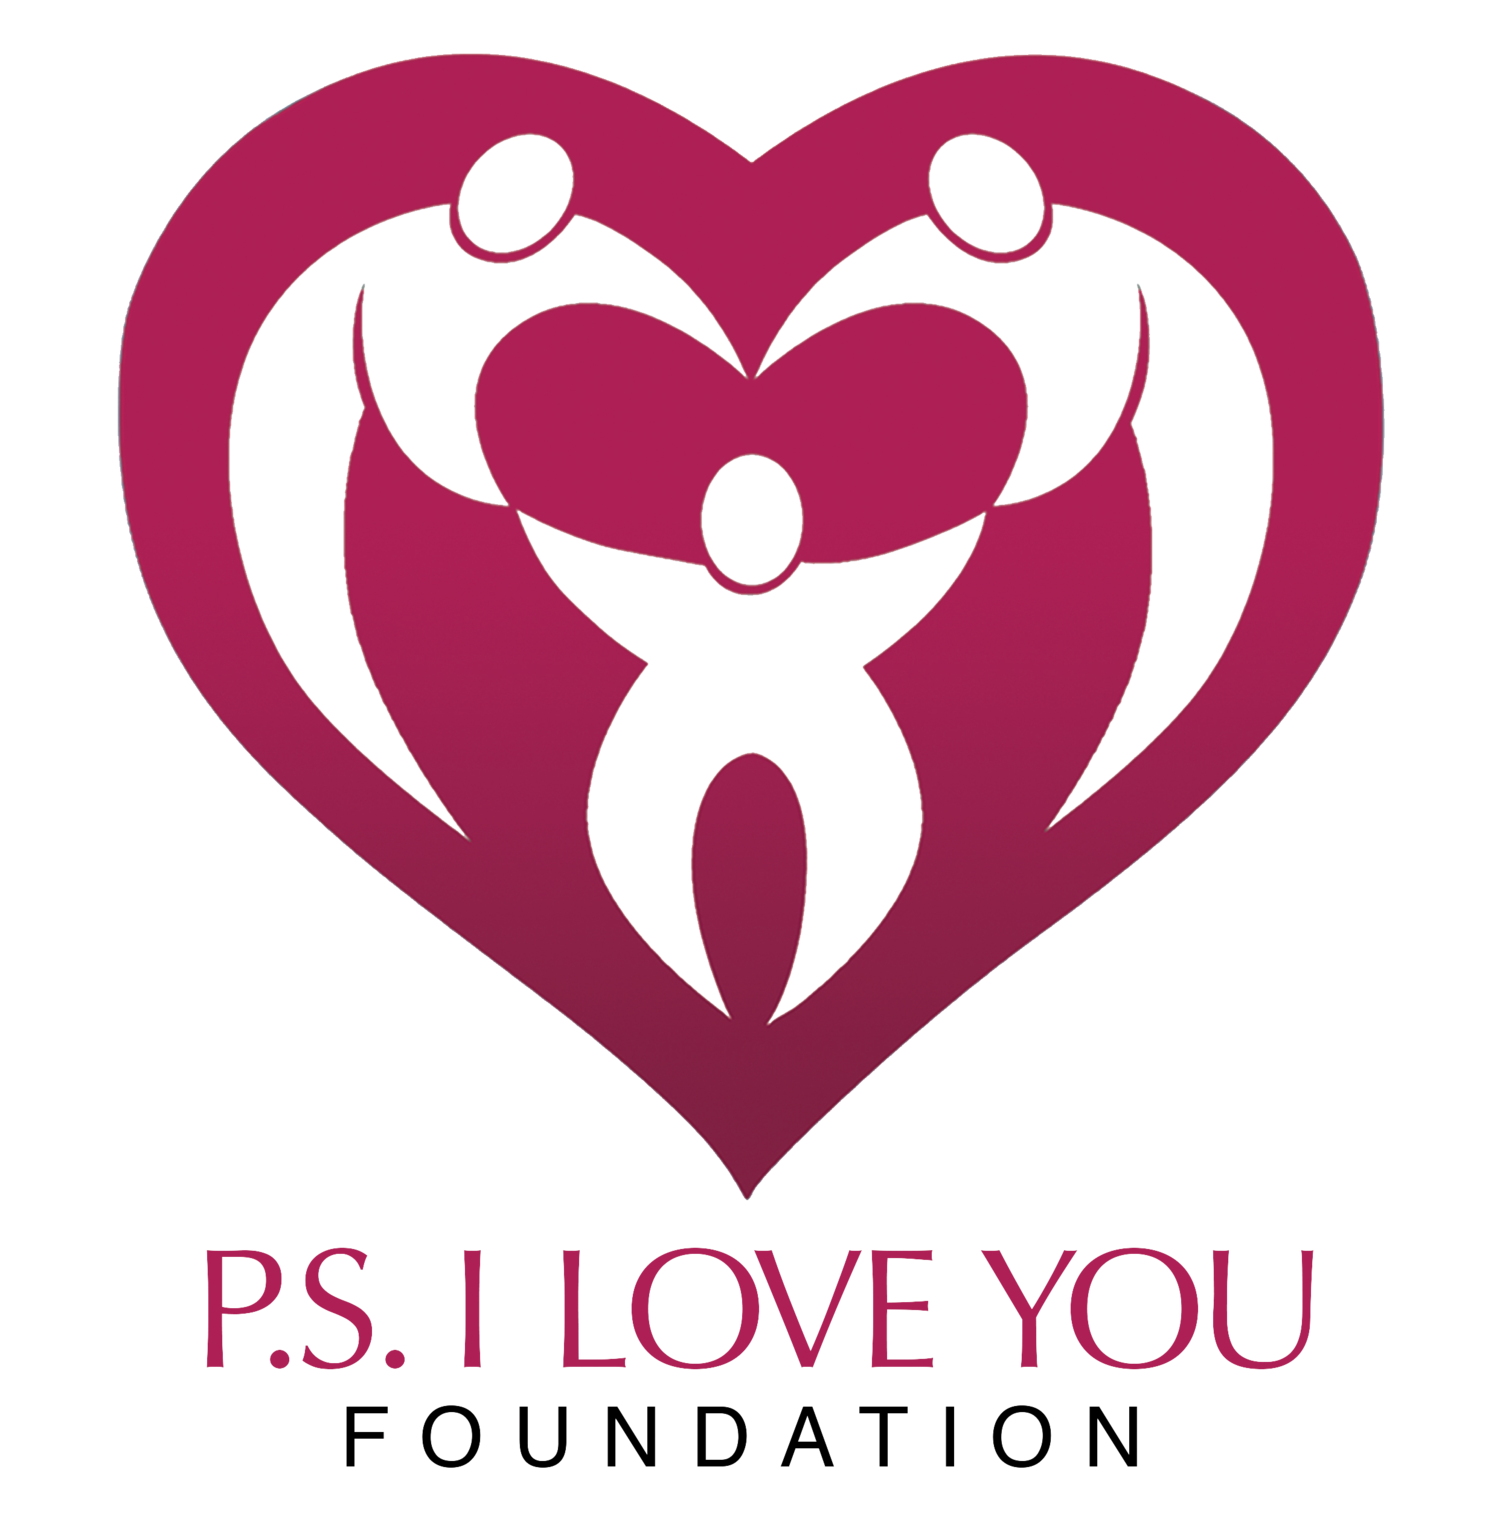 Photo Gallery Ps I Love You Foundation